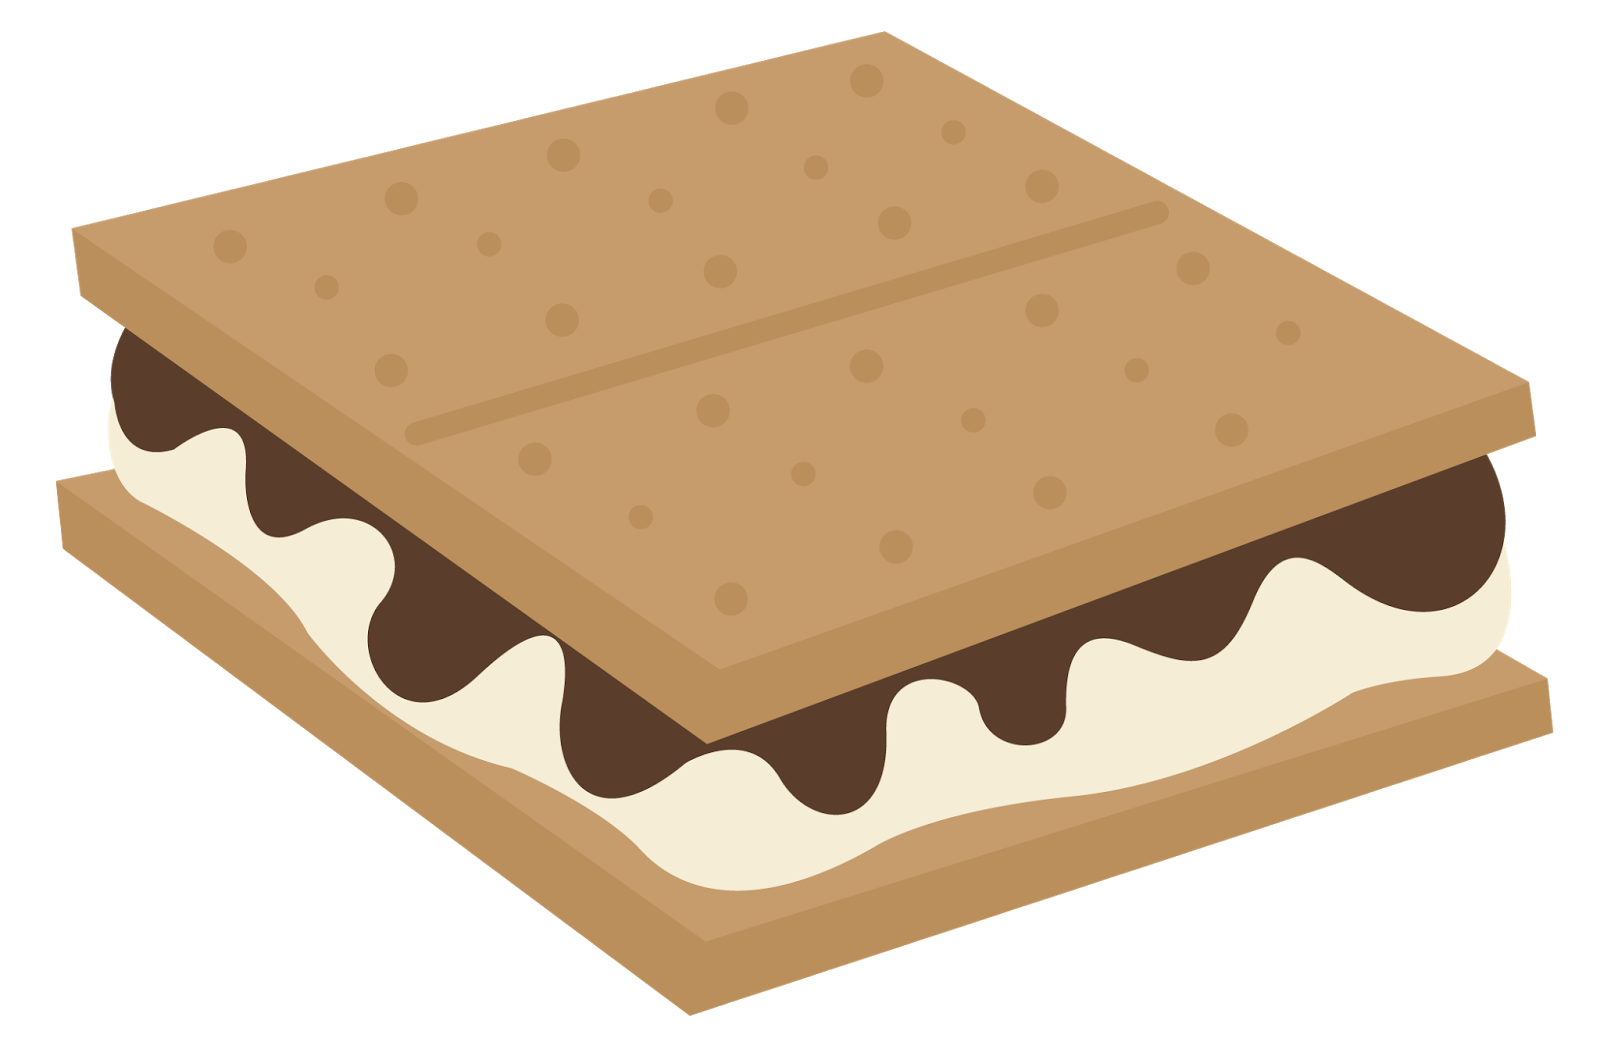 S mores clipart picture freeuse stock S'mores Clipart - Clipart Kid picture freeuse stock